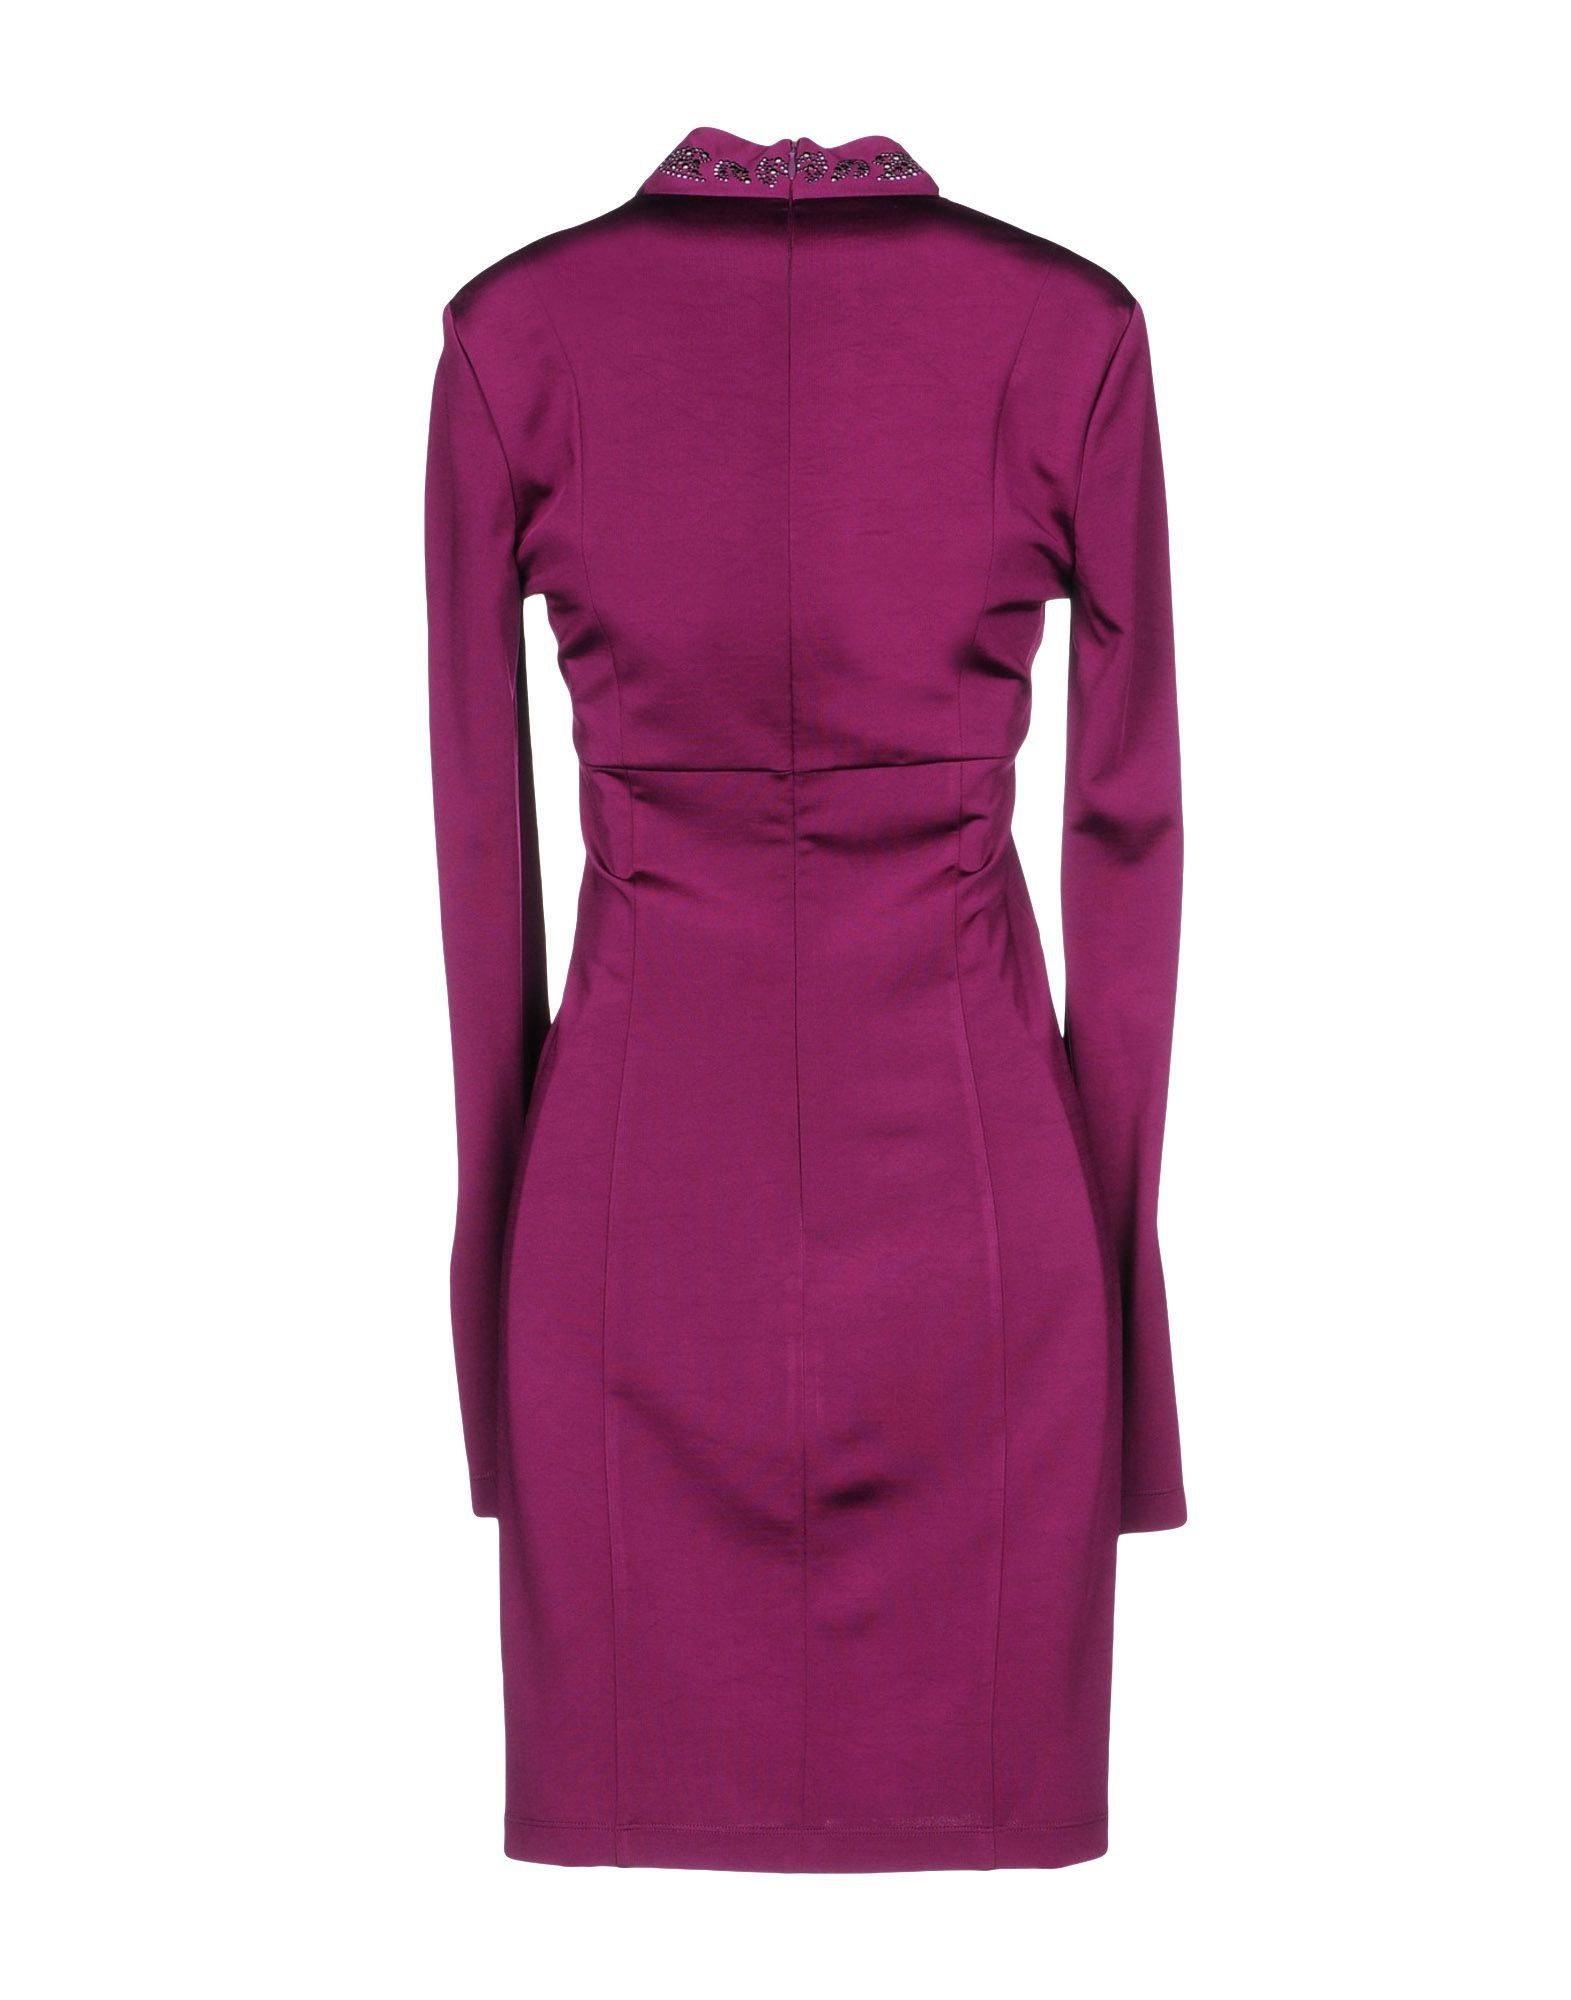 Just Cavalli Mauve Long Sleeve Dress